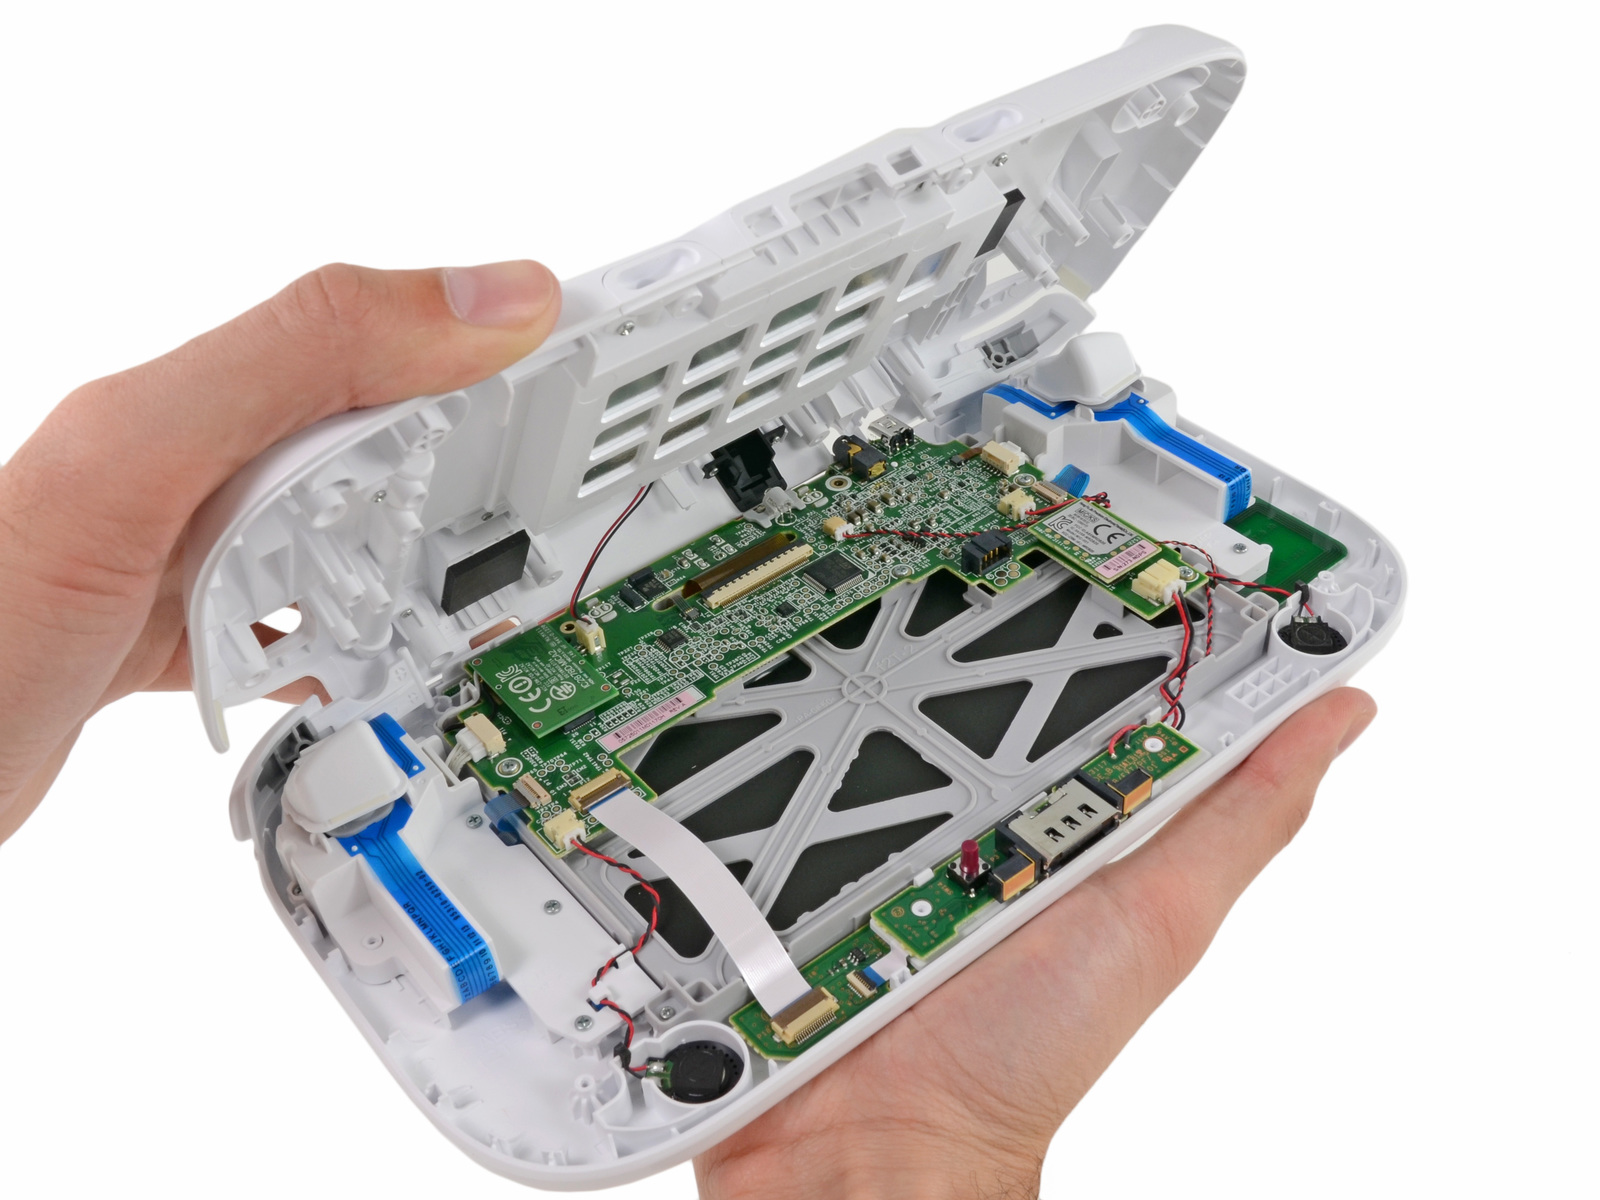 Inside the Wii U GamePad.